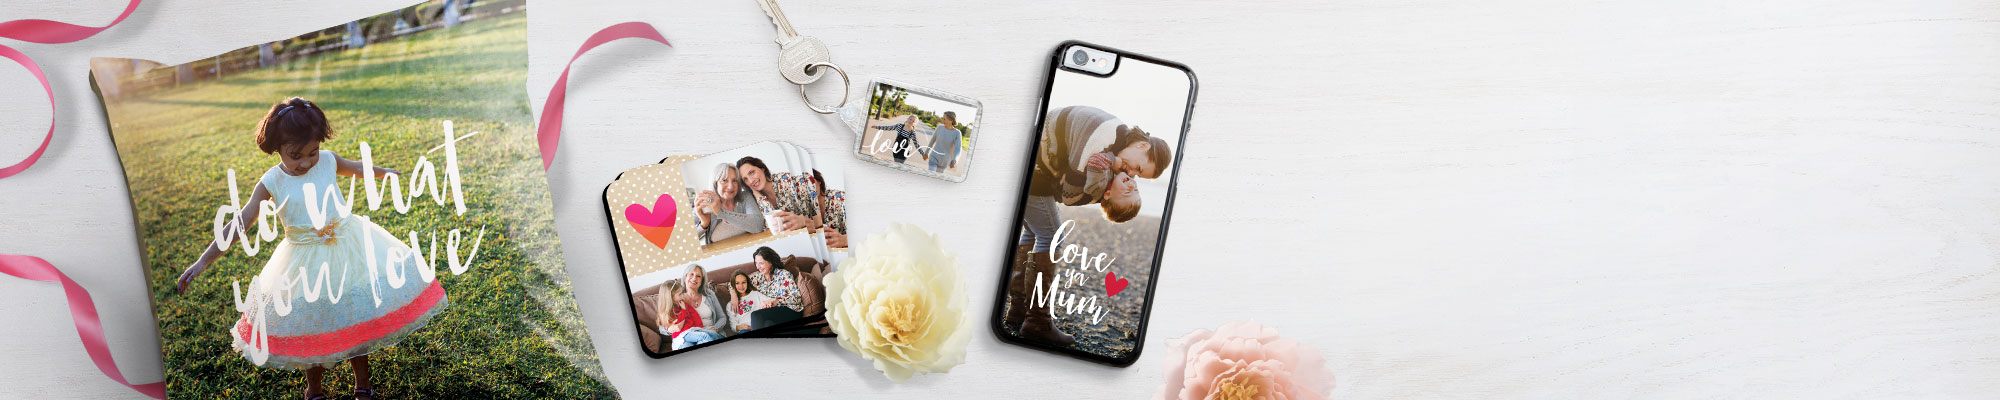 Photo Gifts Create personalised gifts for friends and family. Give loved ones meaningful, one-of-a-kind gifts from the heart.